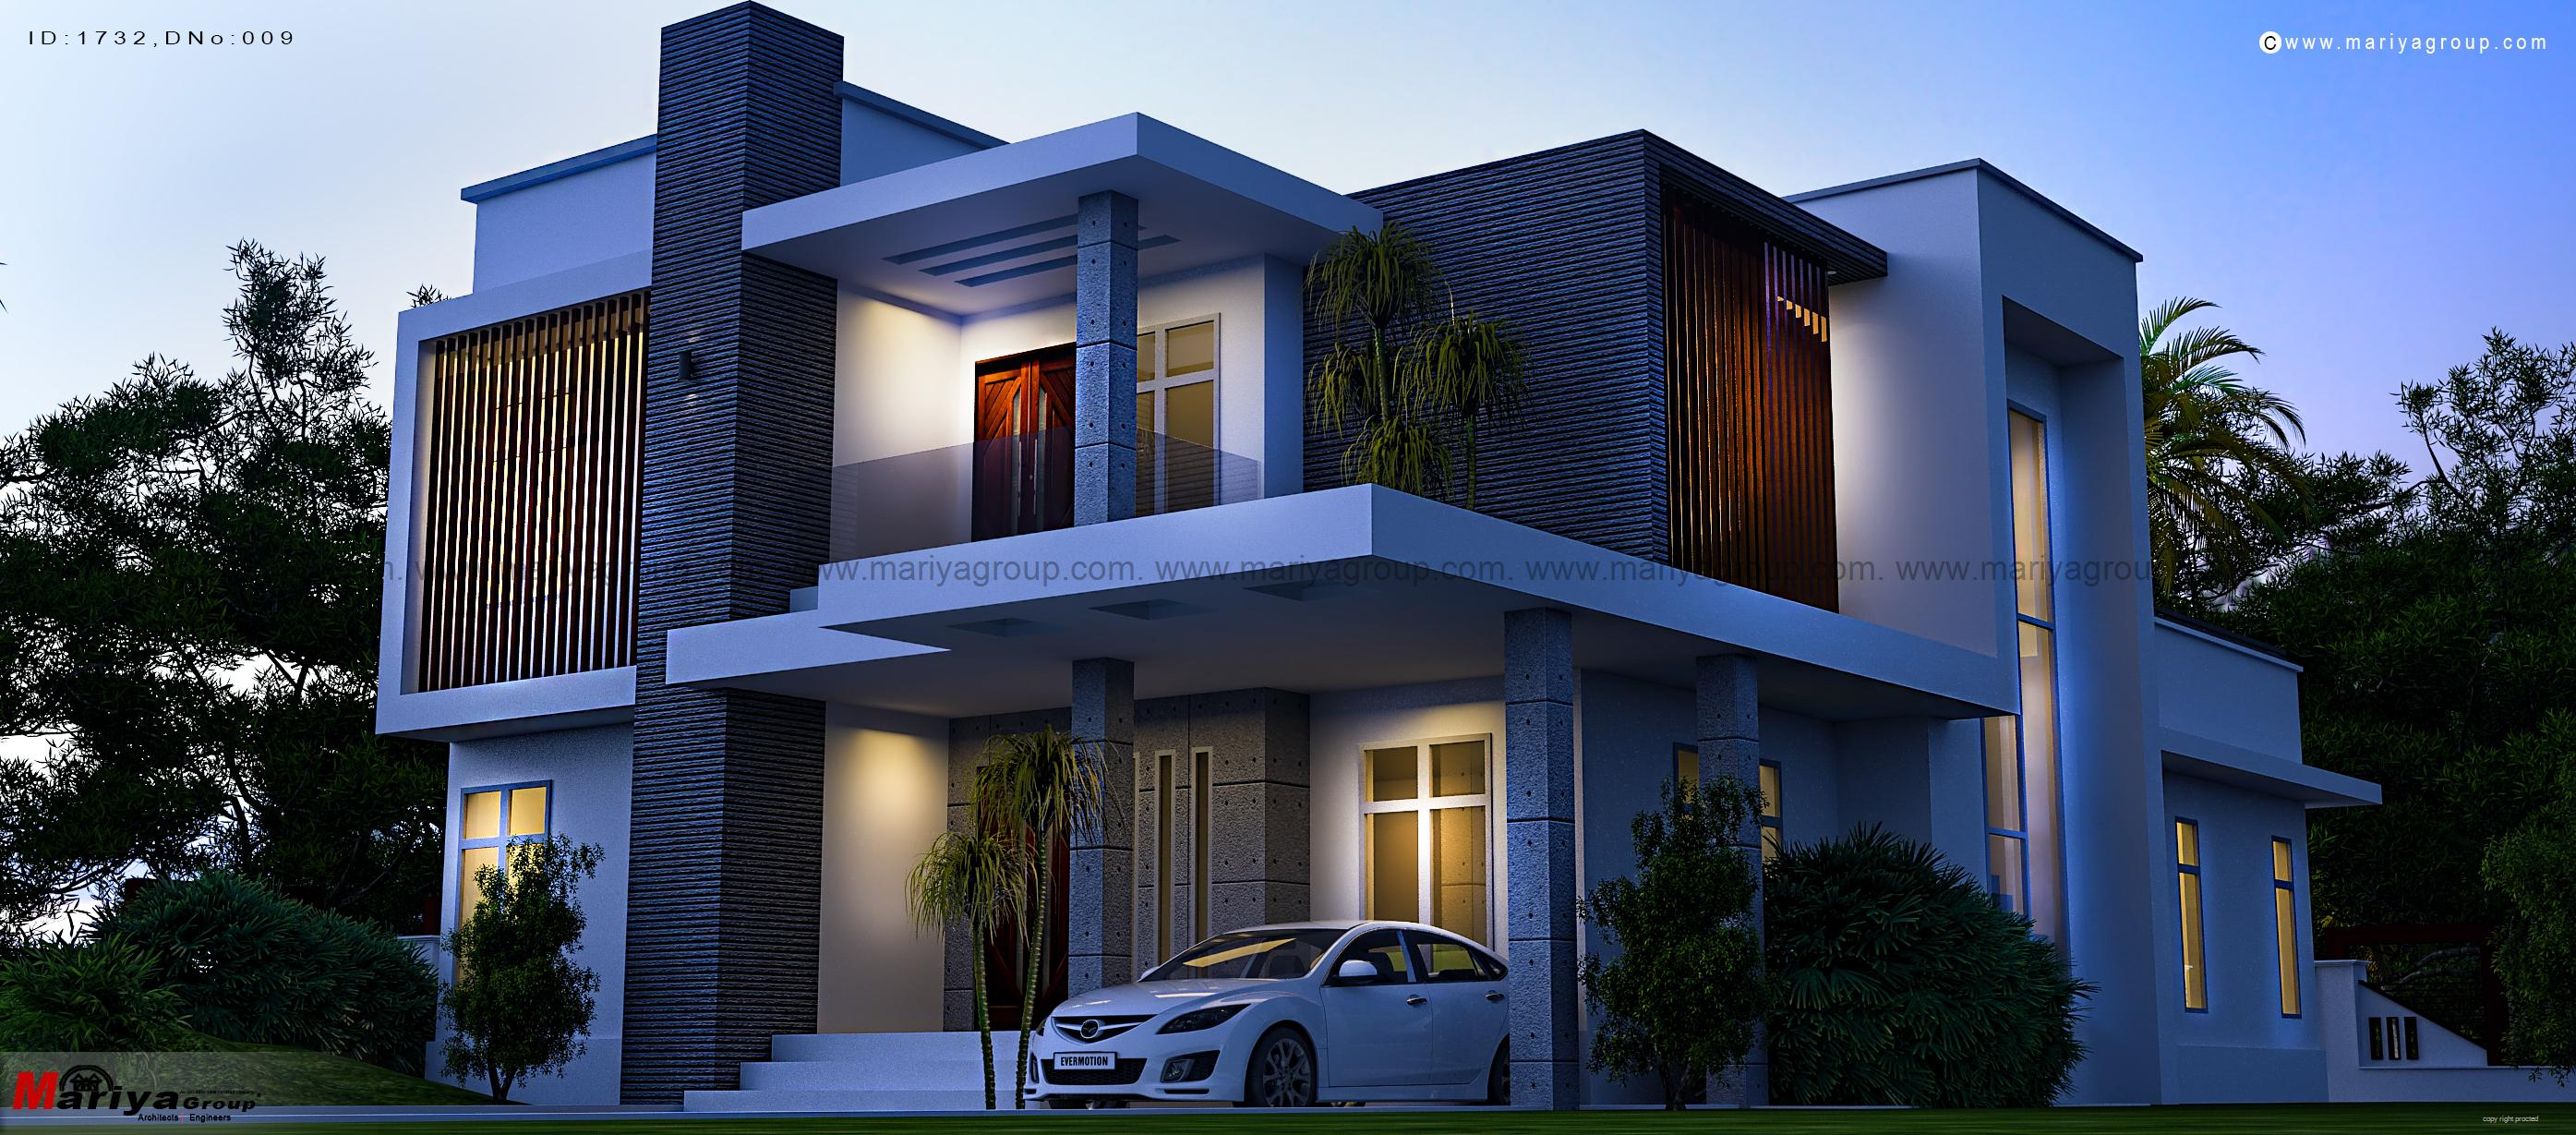 Green building architecture green building architecture kerala mariya for Architecture design for home in india free